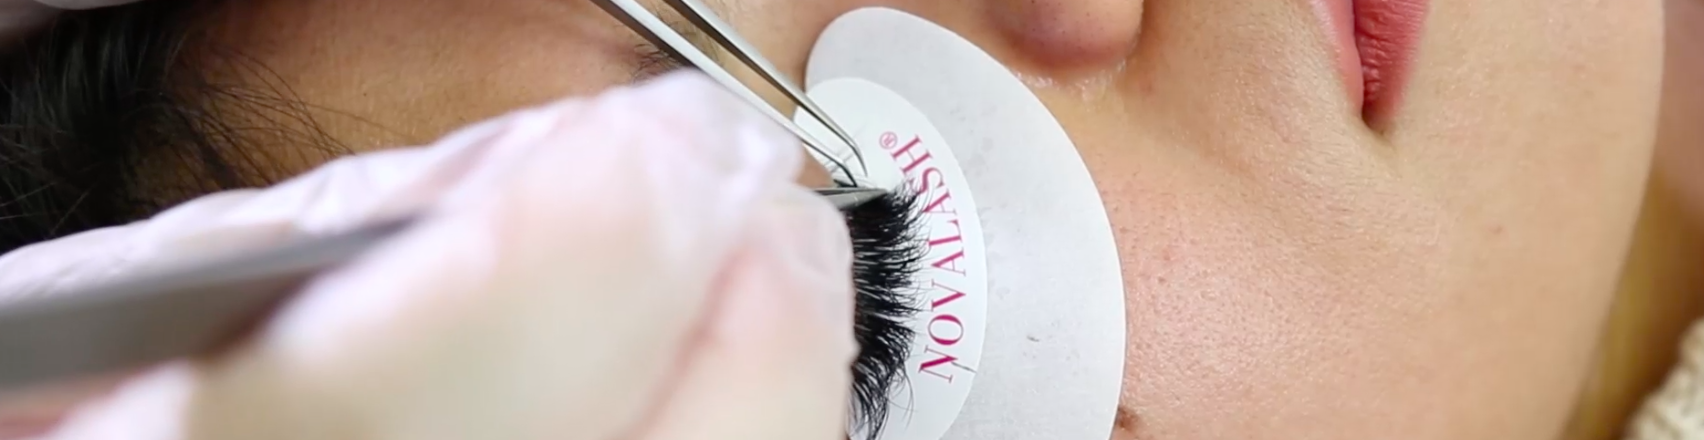 Master Lash Separation Techniques With A Free Novalash Class